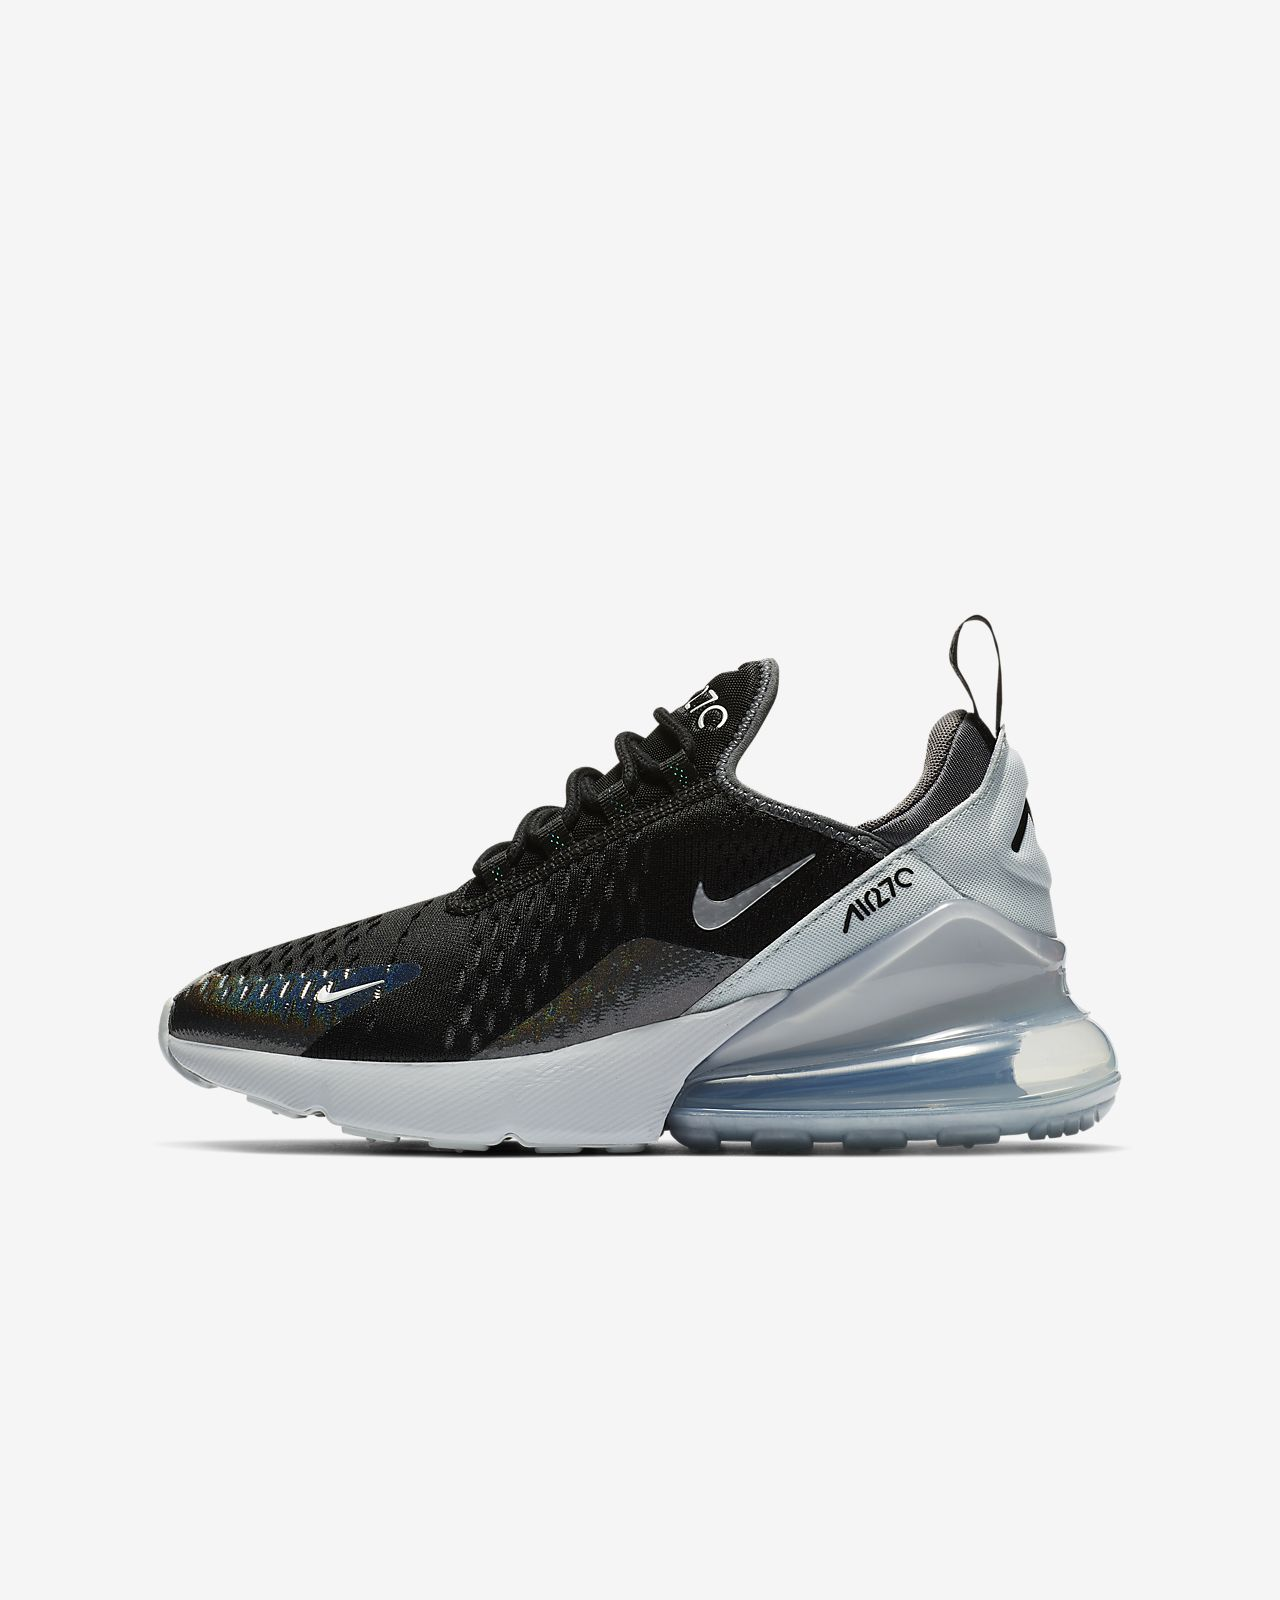 newest d3f3e 9ea1a Nike Air Max 270 Y2K. €105